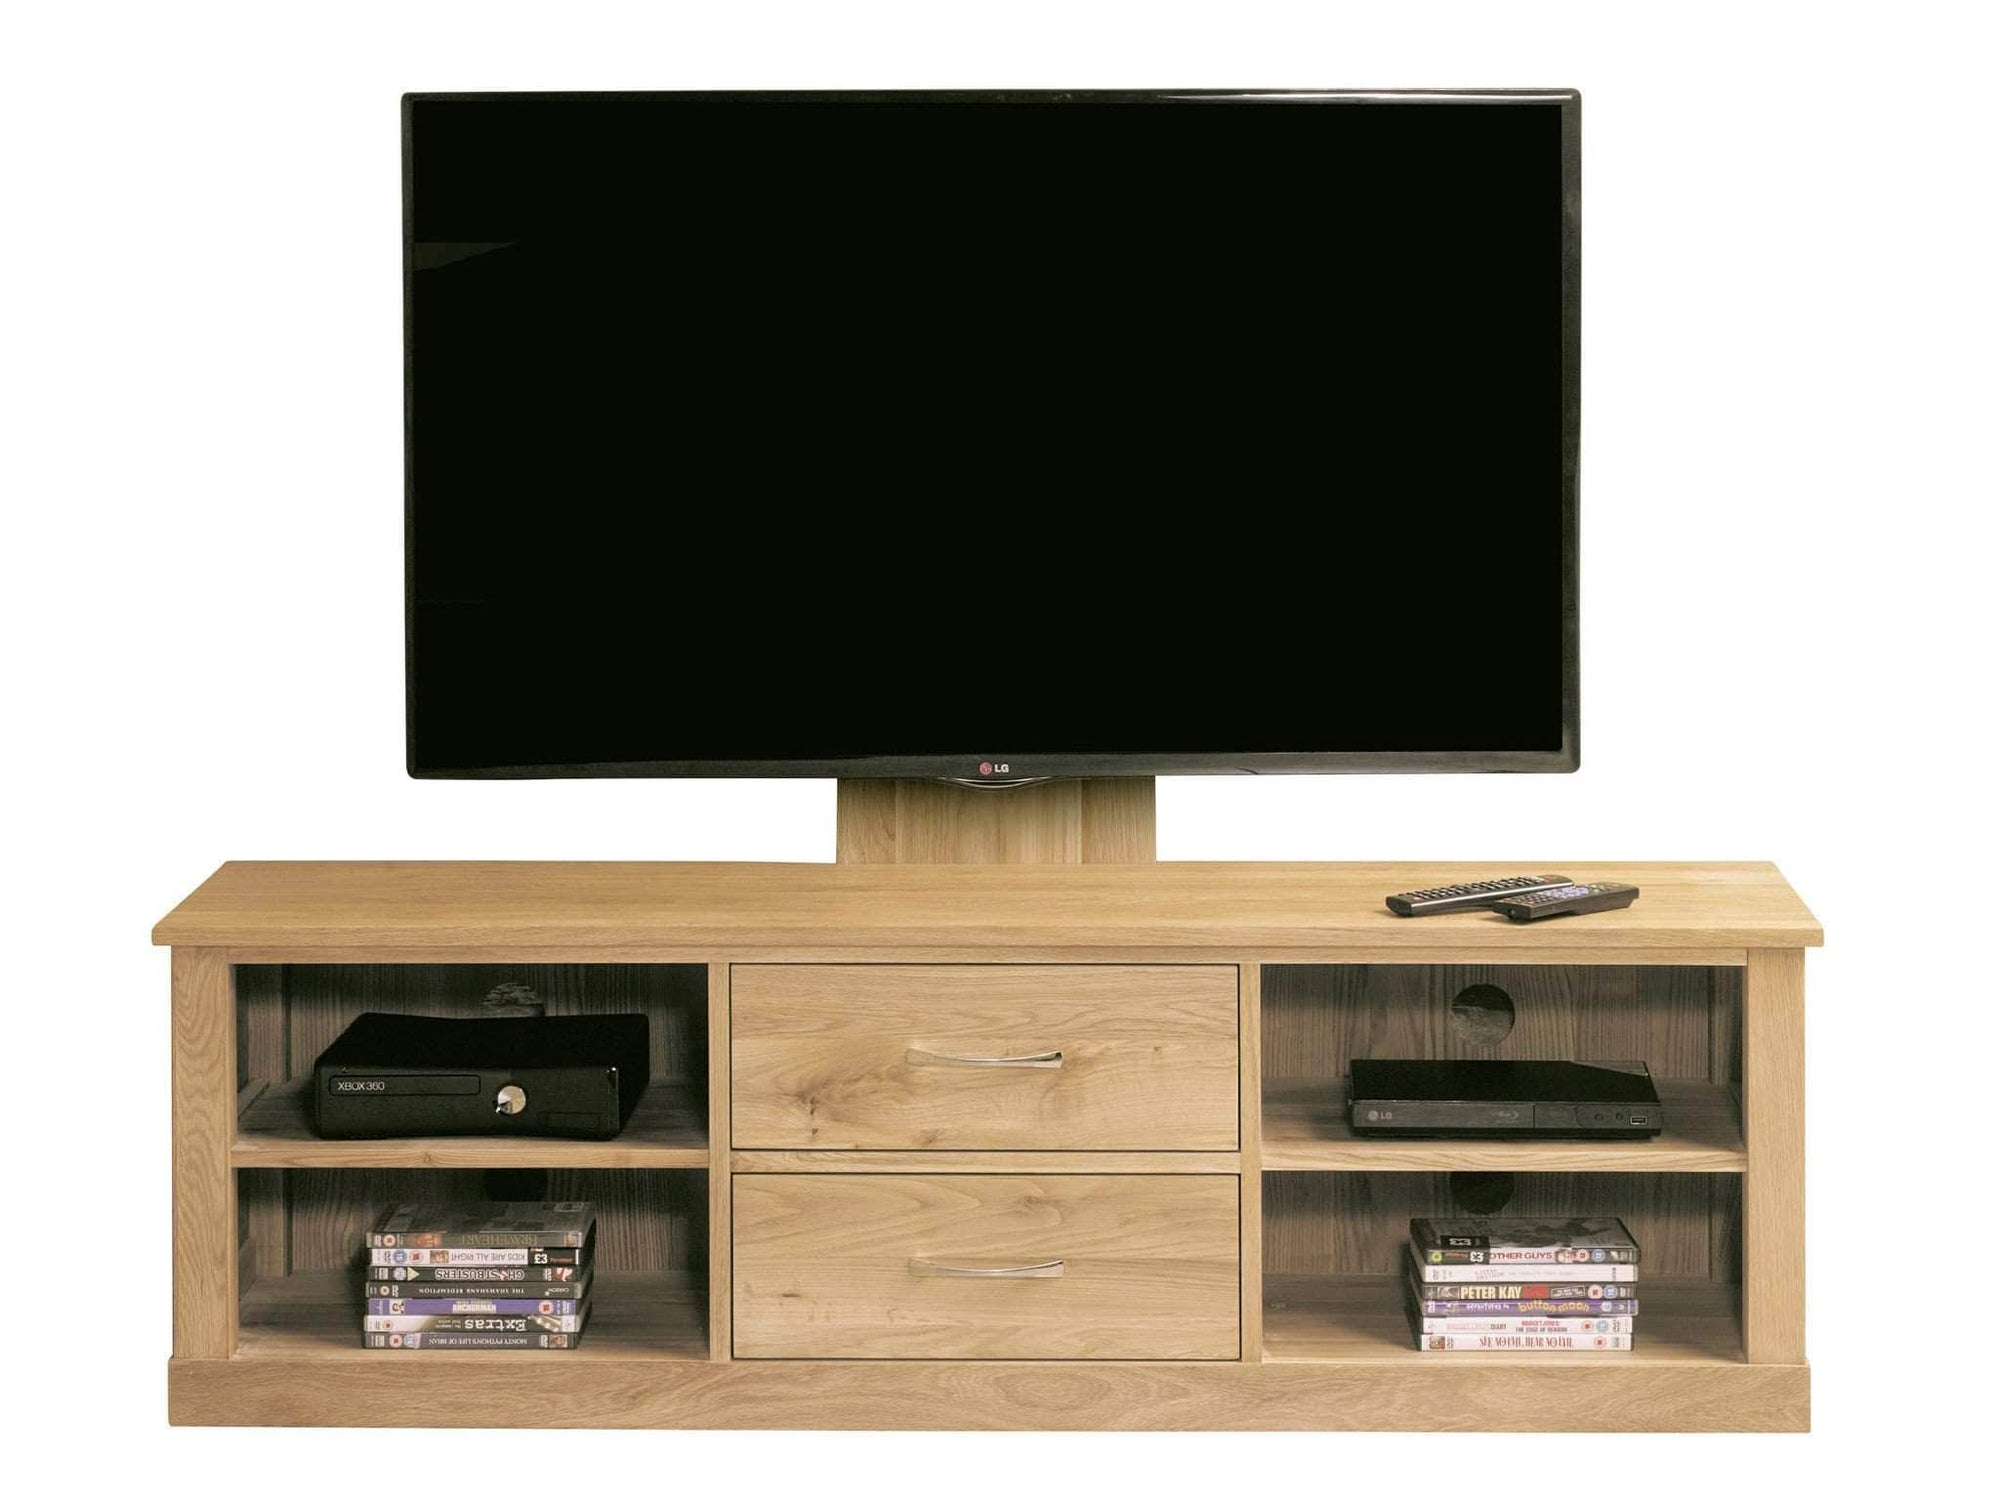 Mounted TV stand made from solid oak, featuring two drawers and four shelves